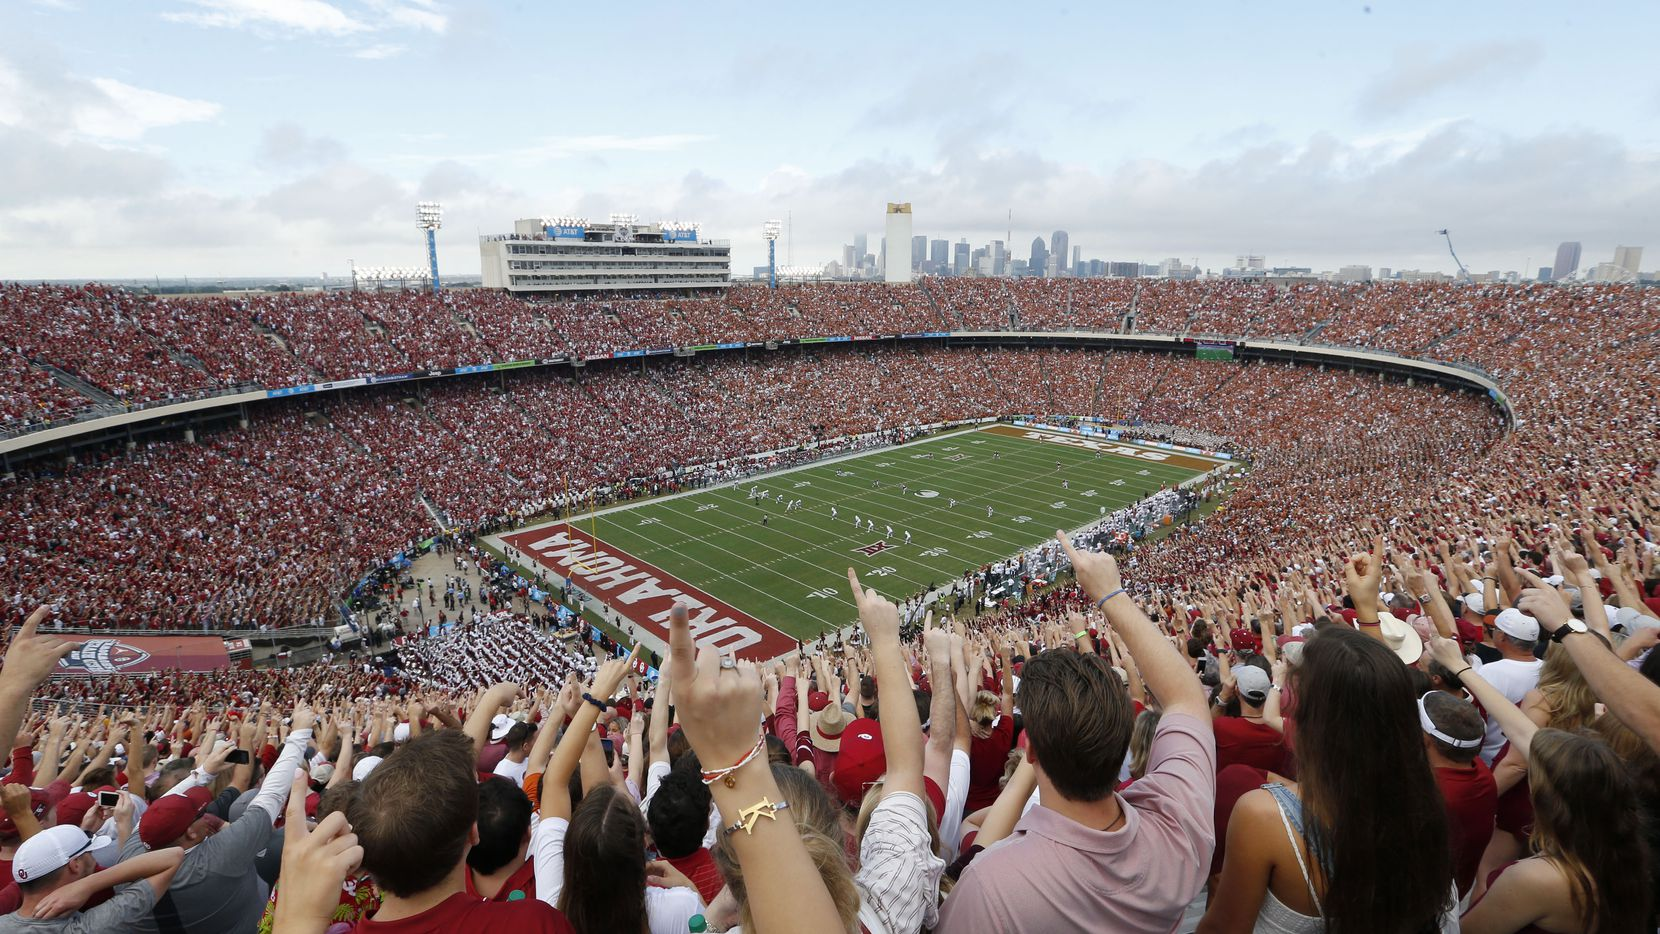 Oklahoma Sooners fans yell as Texas Longhorns kicks the ball off to Oklahoma at the start of a NCAA football game  between Texas Longhorns and the Oklahoma Sooners at the Cotton Bowl in Dallas on Saturday, October 6, 2018.